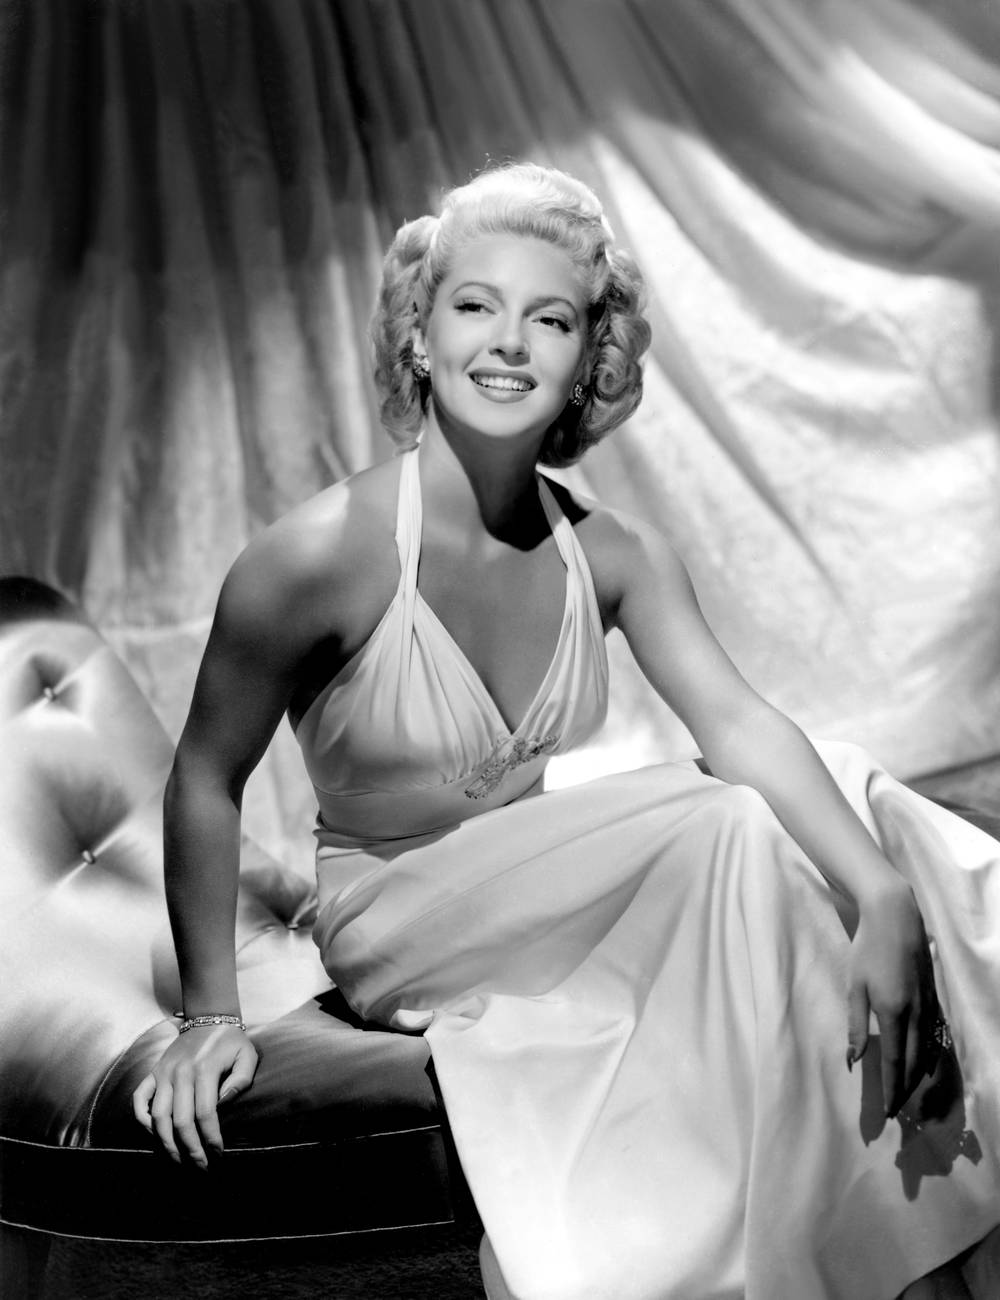 Remembering Lana Turner on her Centennial